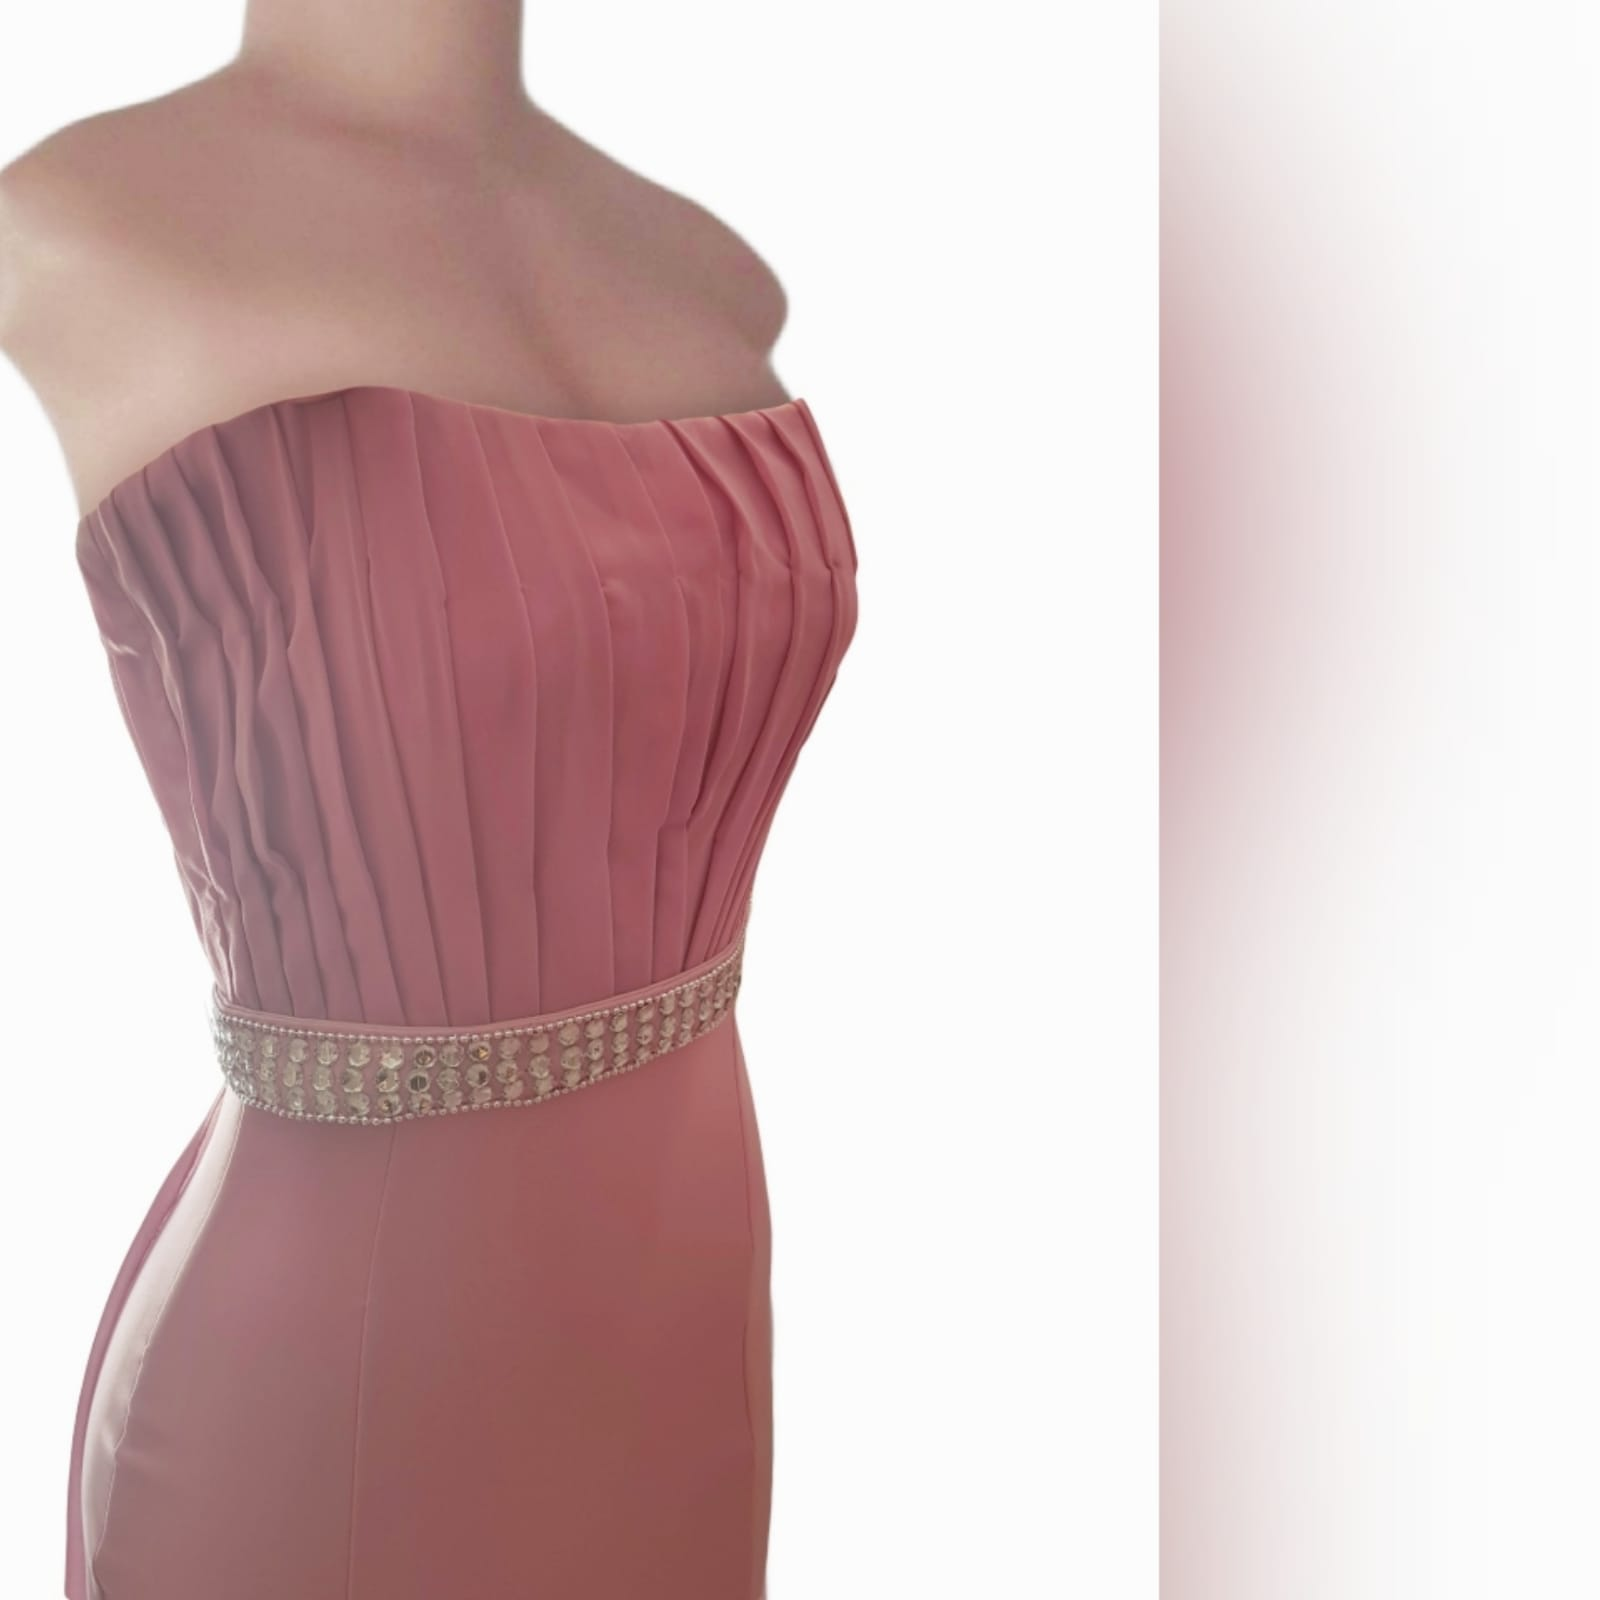 Dusty pink soft mermaid matric dress with a pleated bodice 11 dusty pink soft mermaid matric dress with a pleated bodice, with a train. Extra detachable chiffon train with a beaded belt and removable shoulder straps